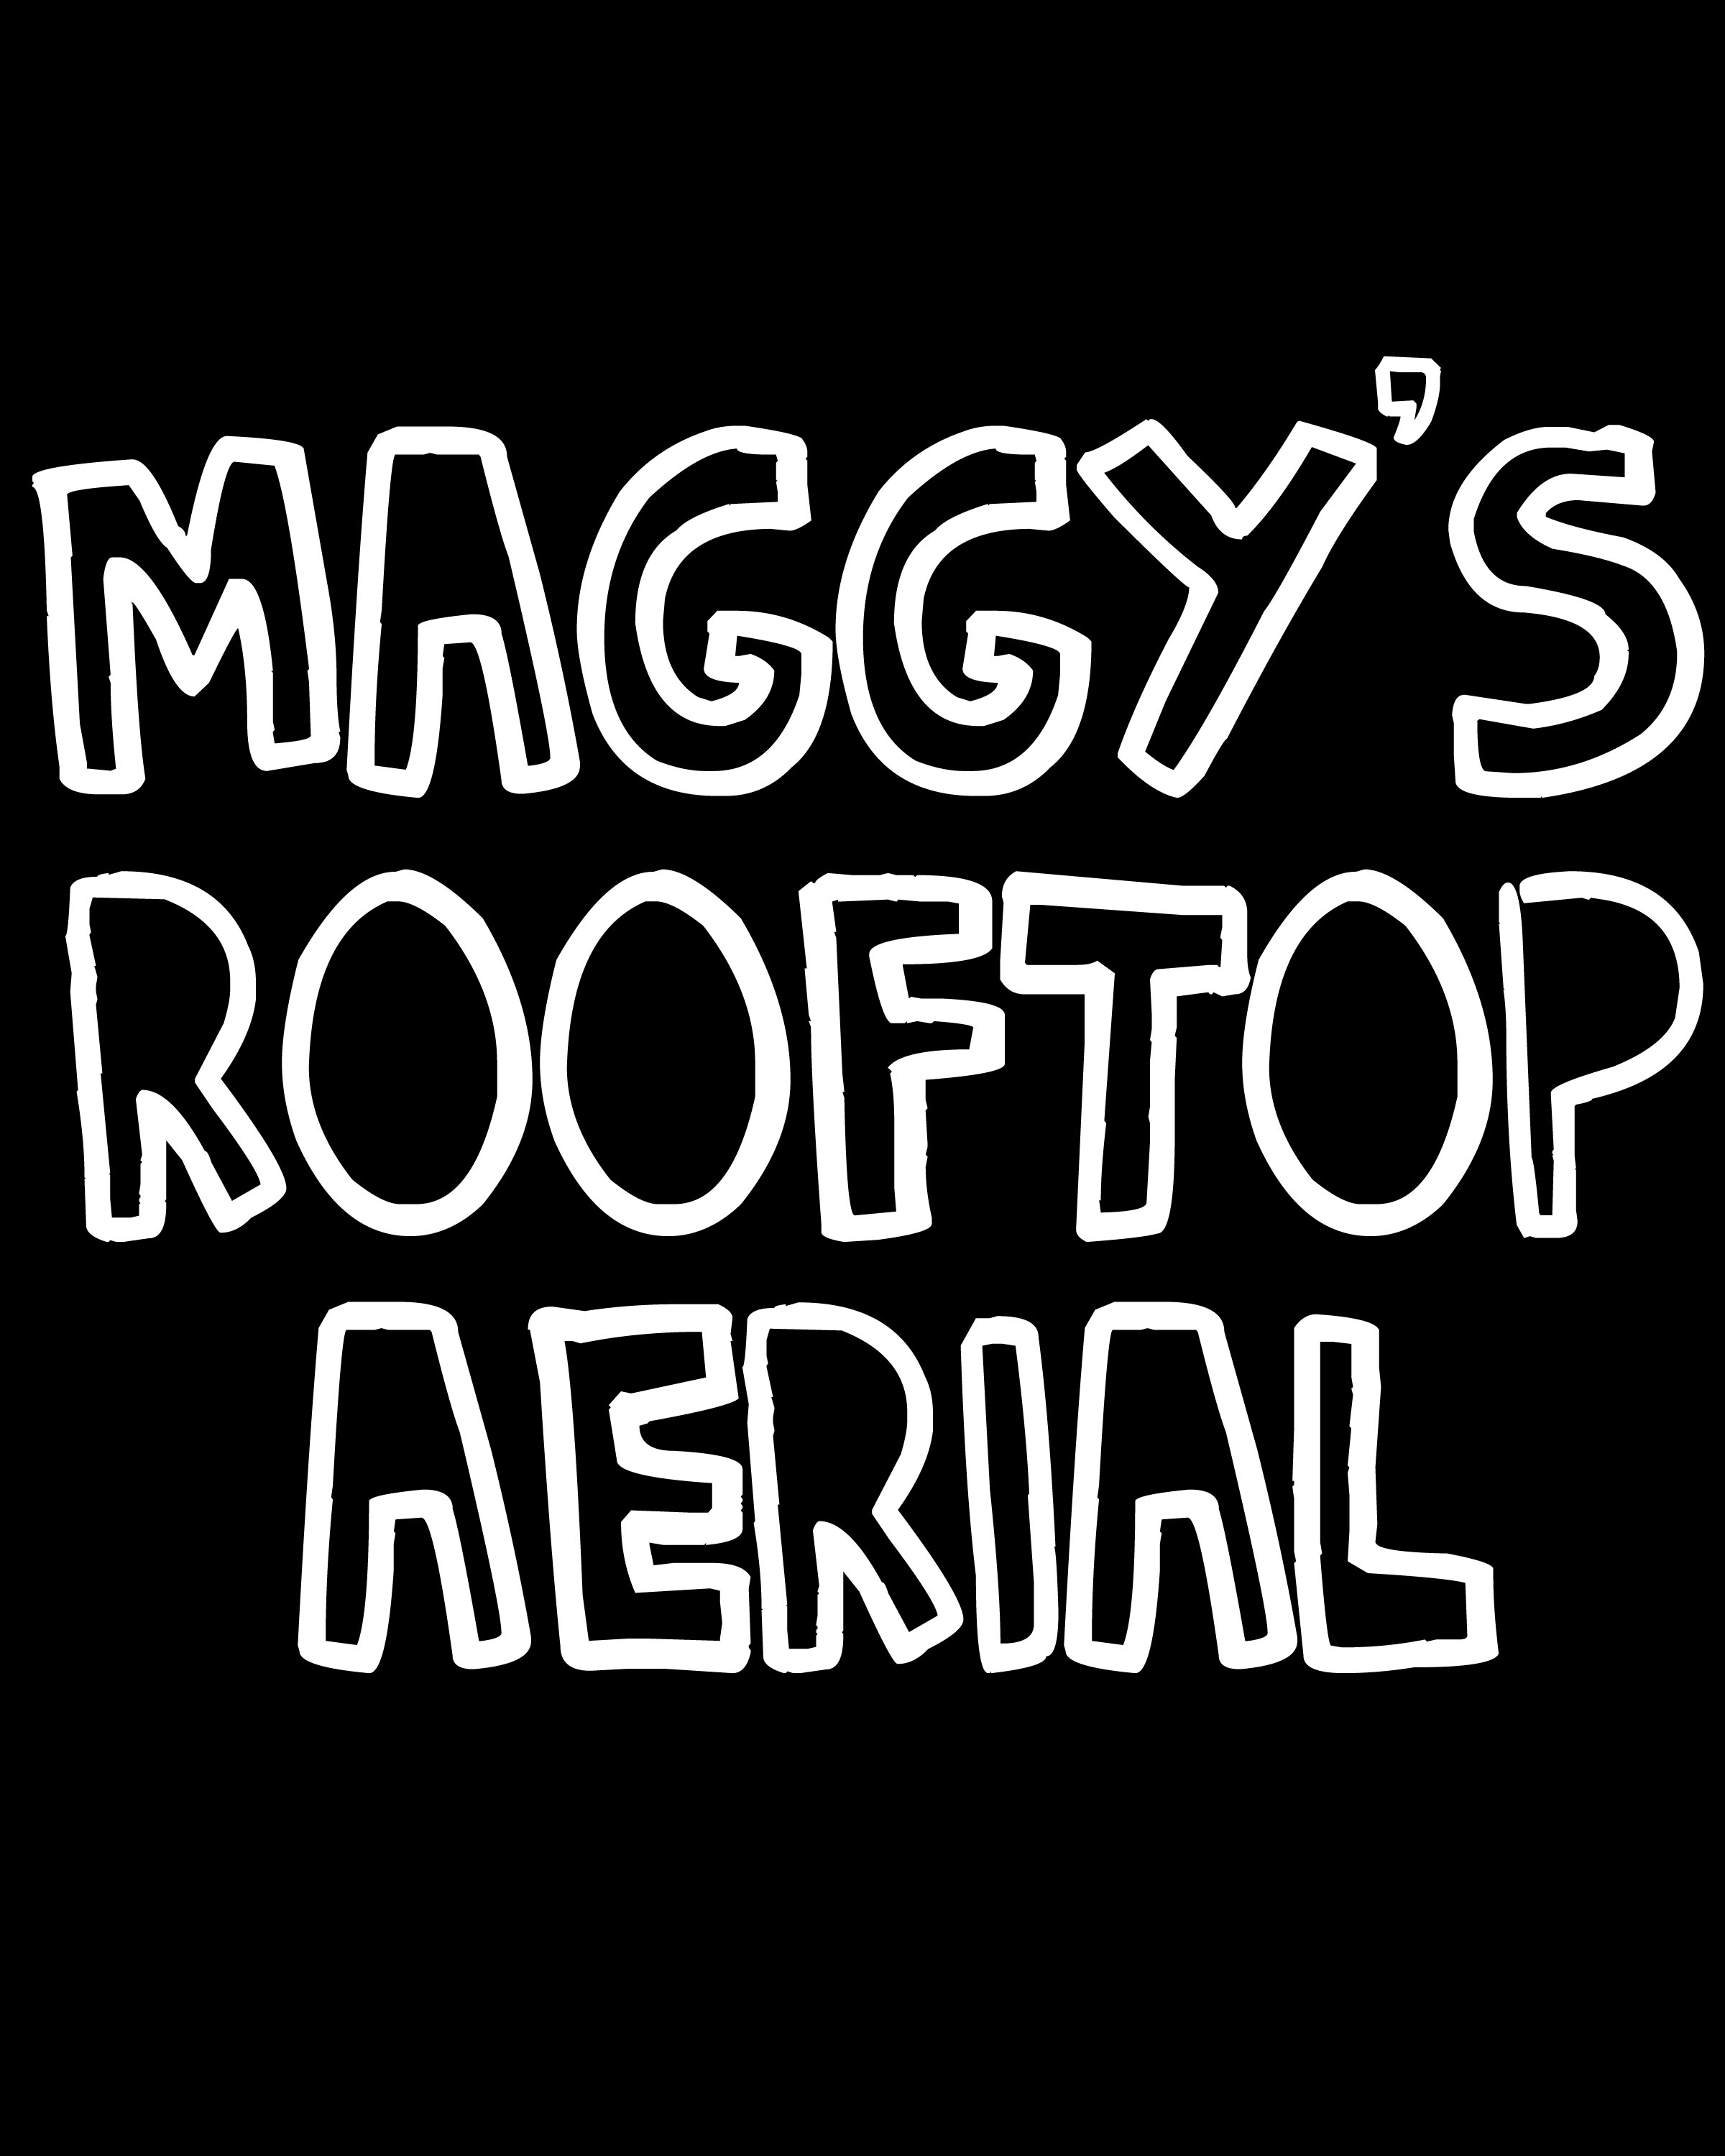 Maggy's Rooftop Aerial